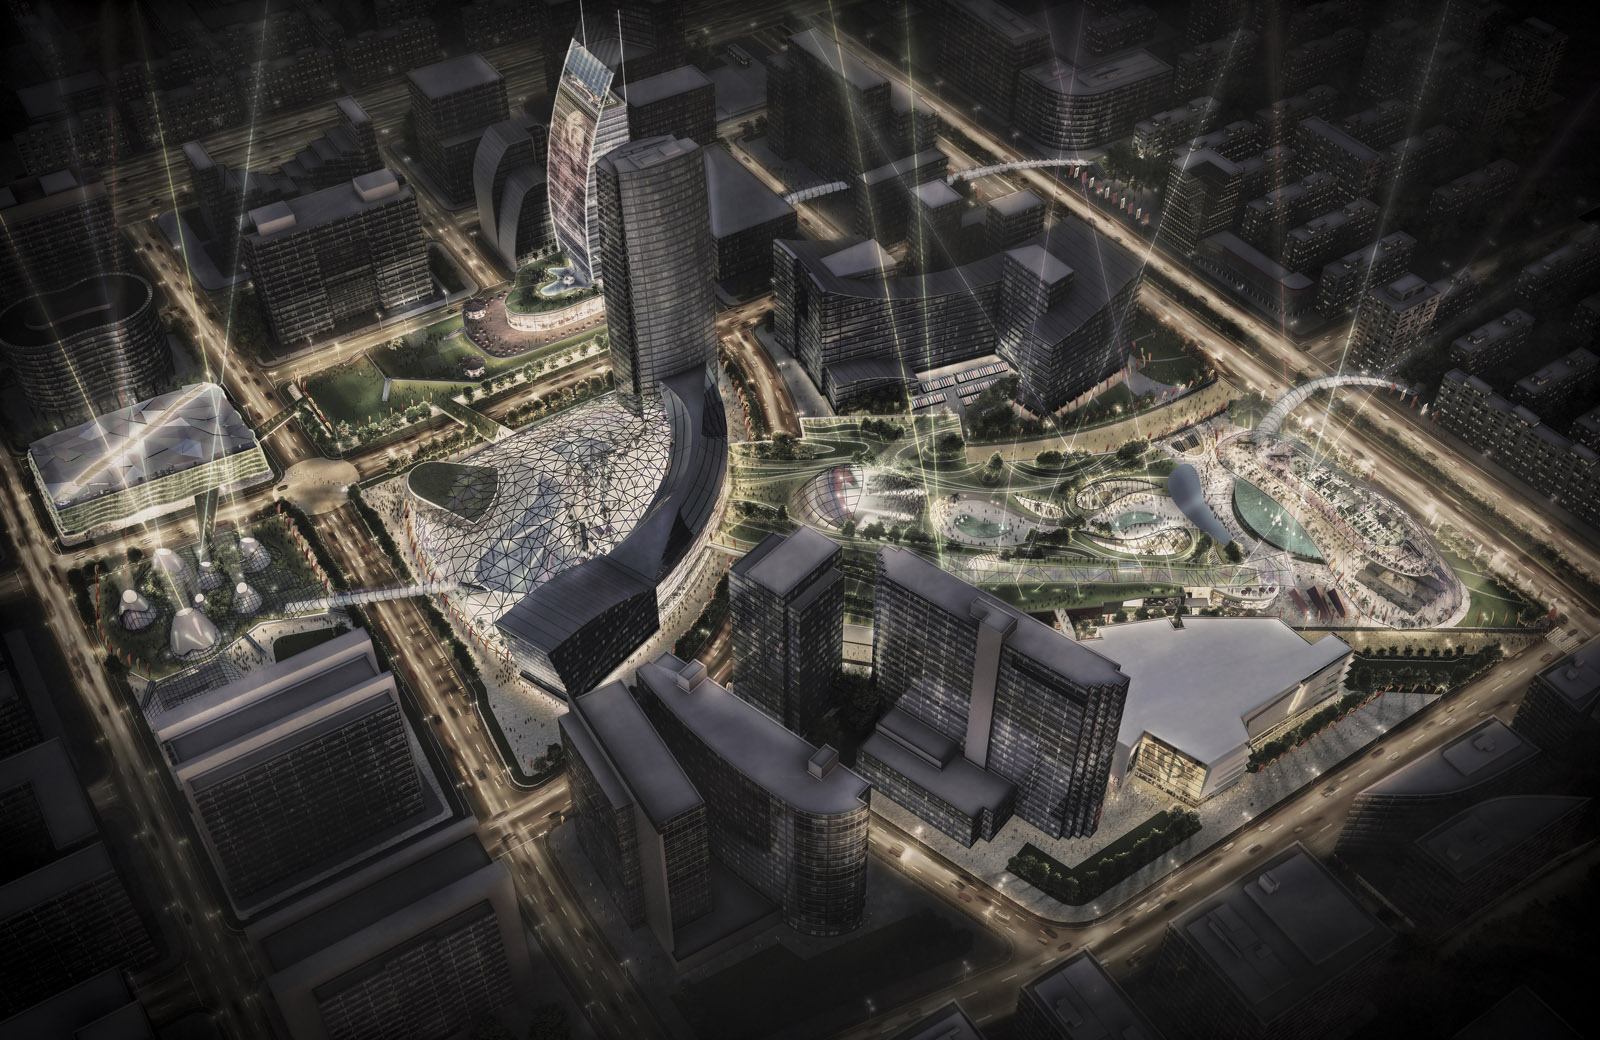 Beijing Times Square redevelopment design proposal by Wei Yang Associates